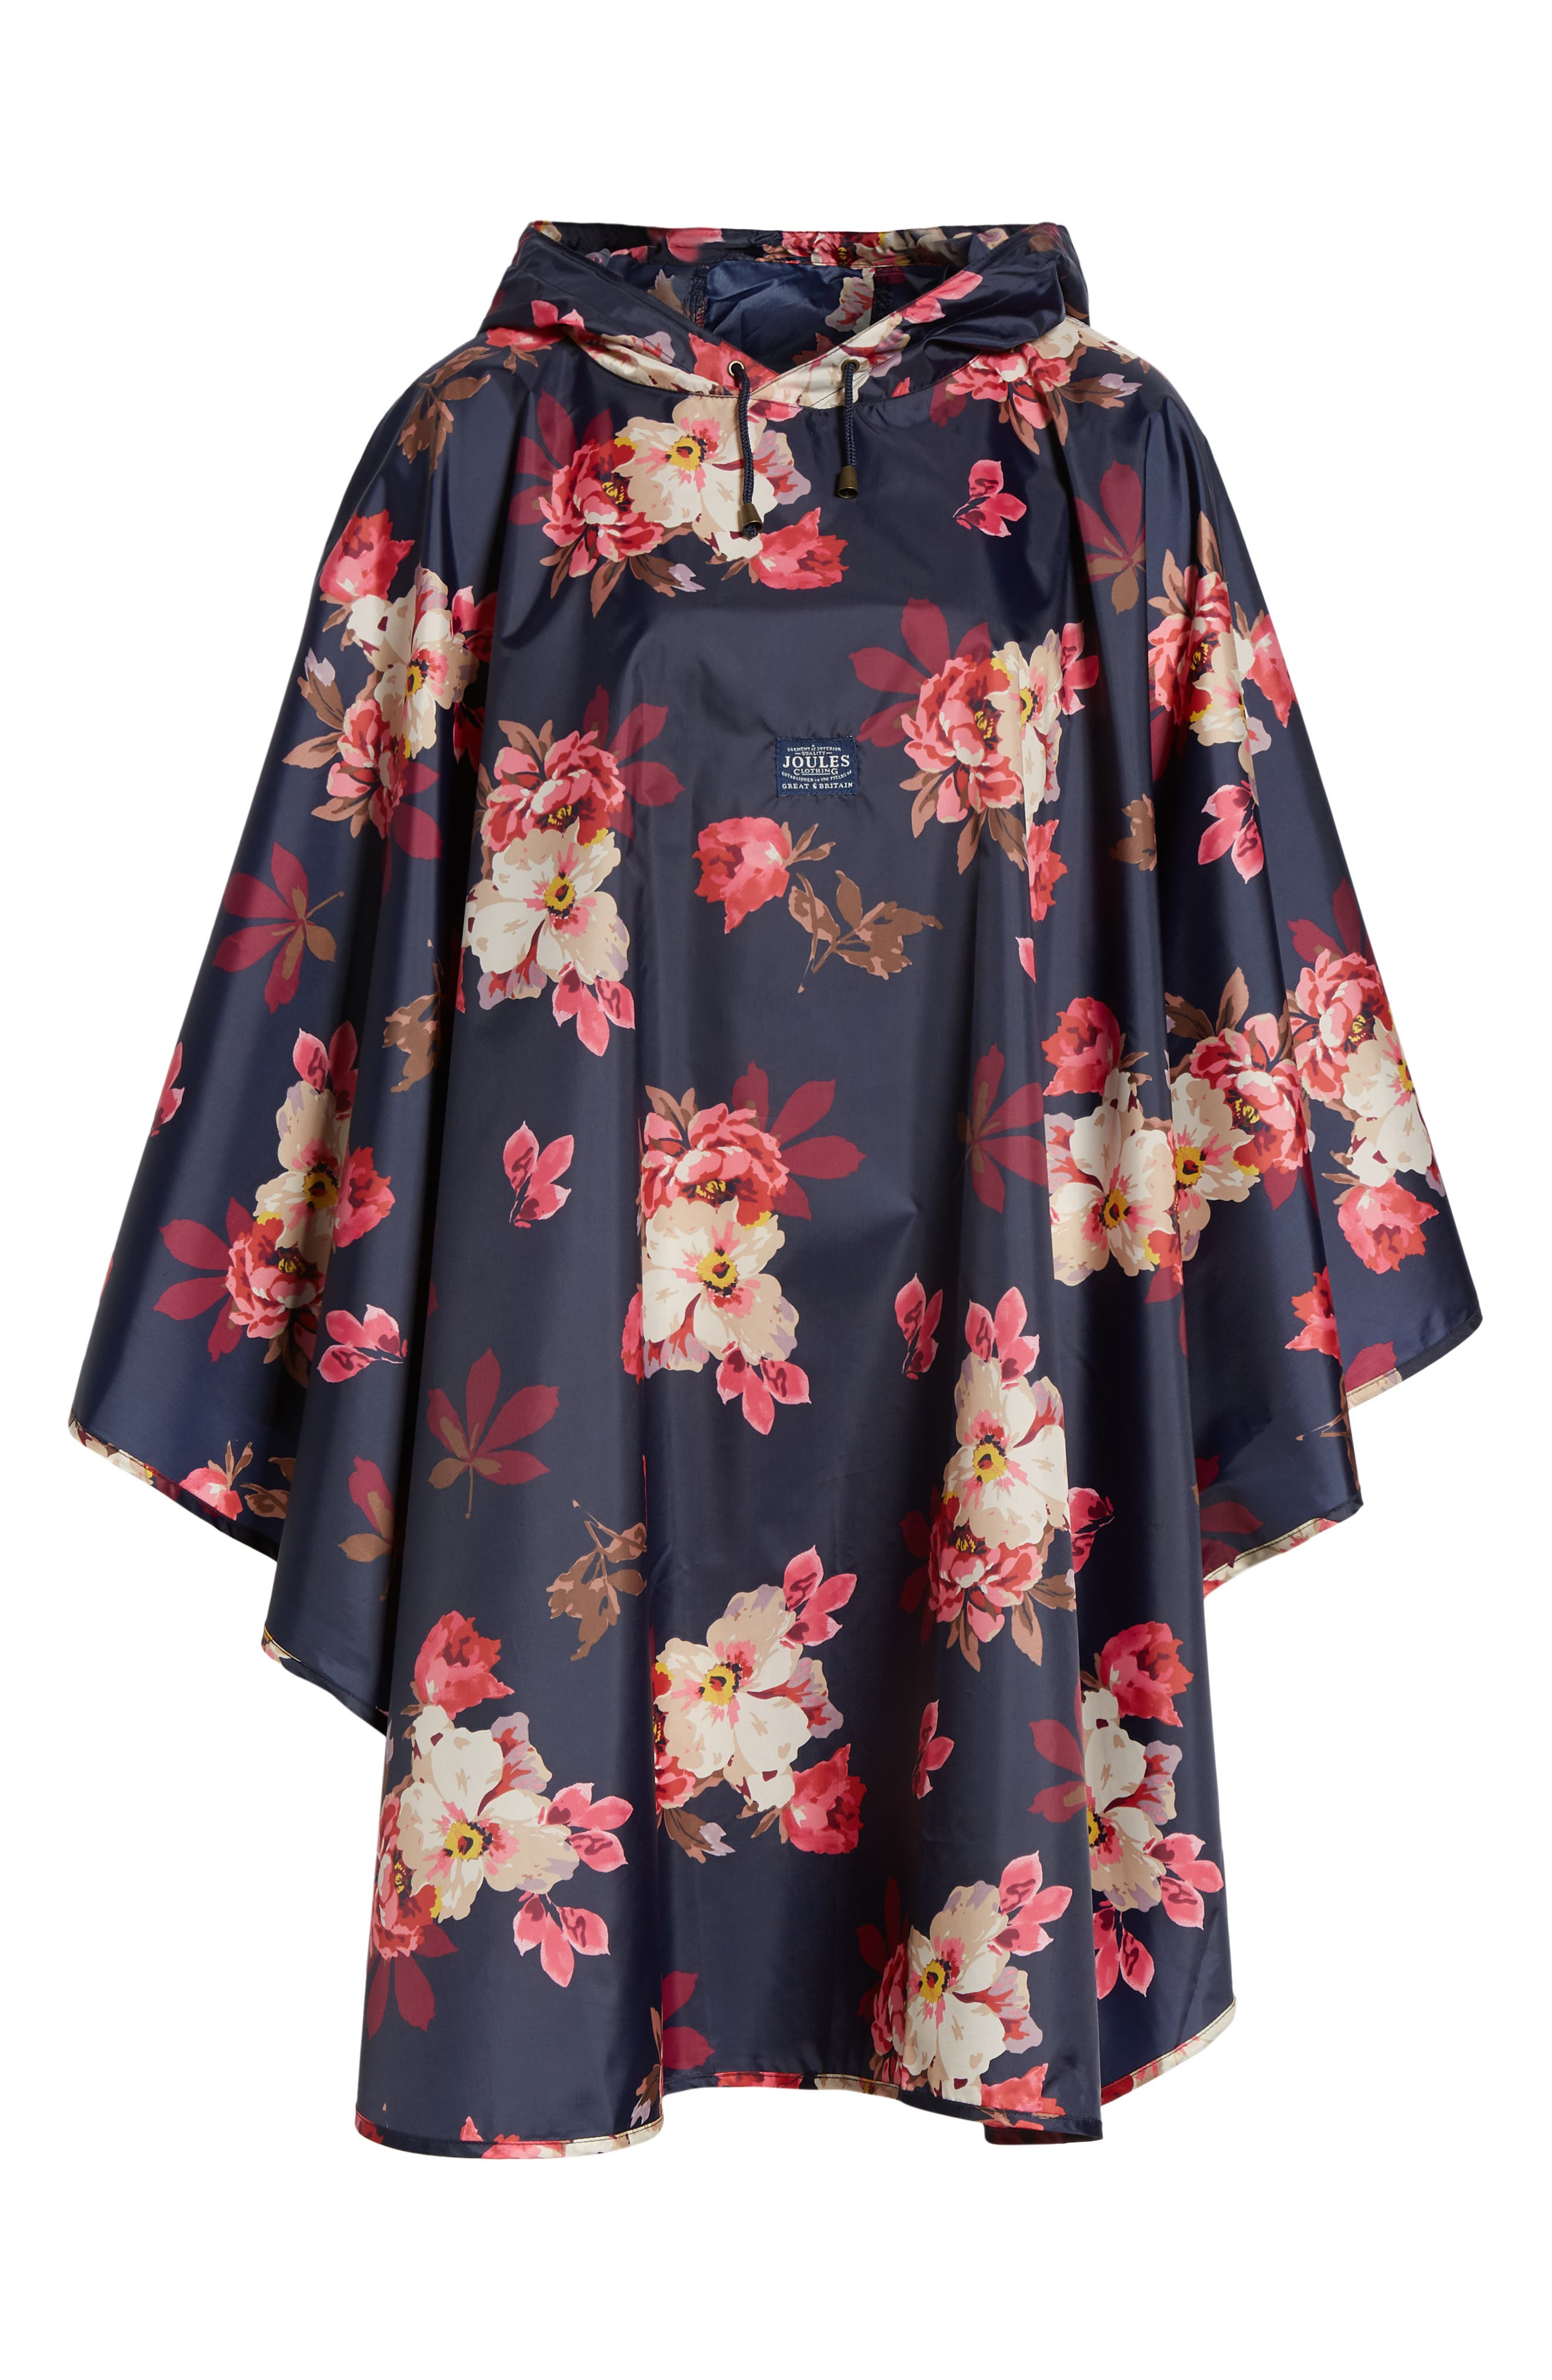 Right as Rain Print Packable Hooded Poncho,                             Alternate thumbnail 6, color,                             FRENCH NAVY BIRCHAM BLOOM